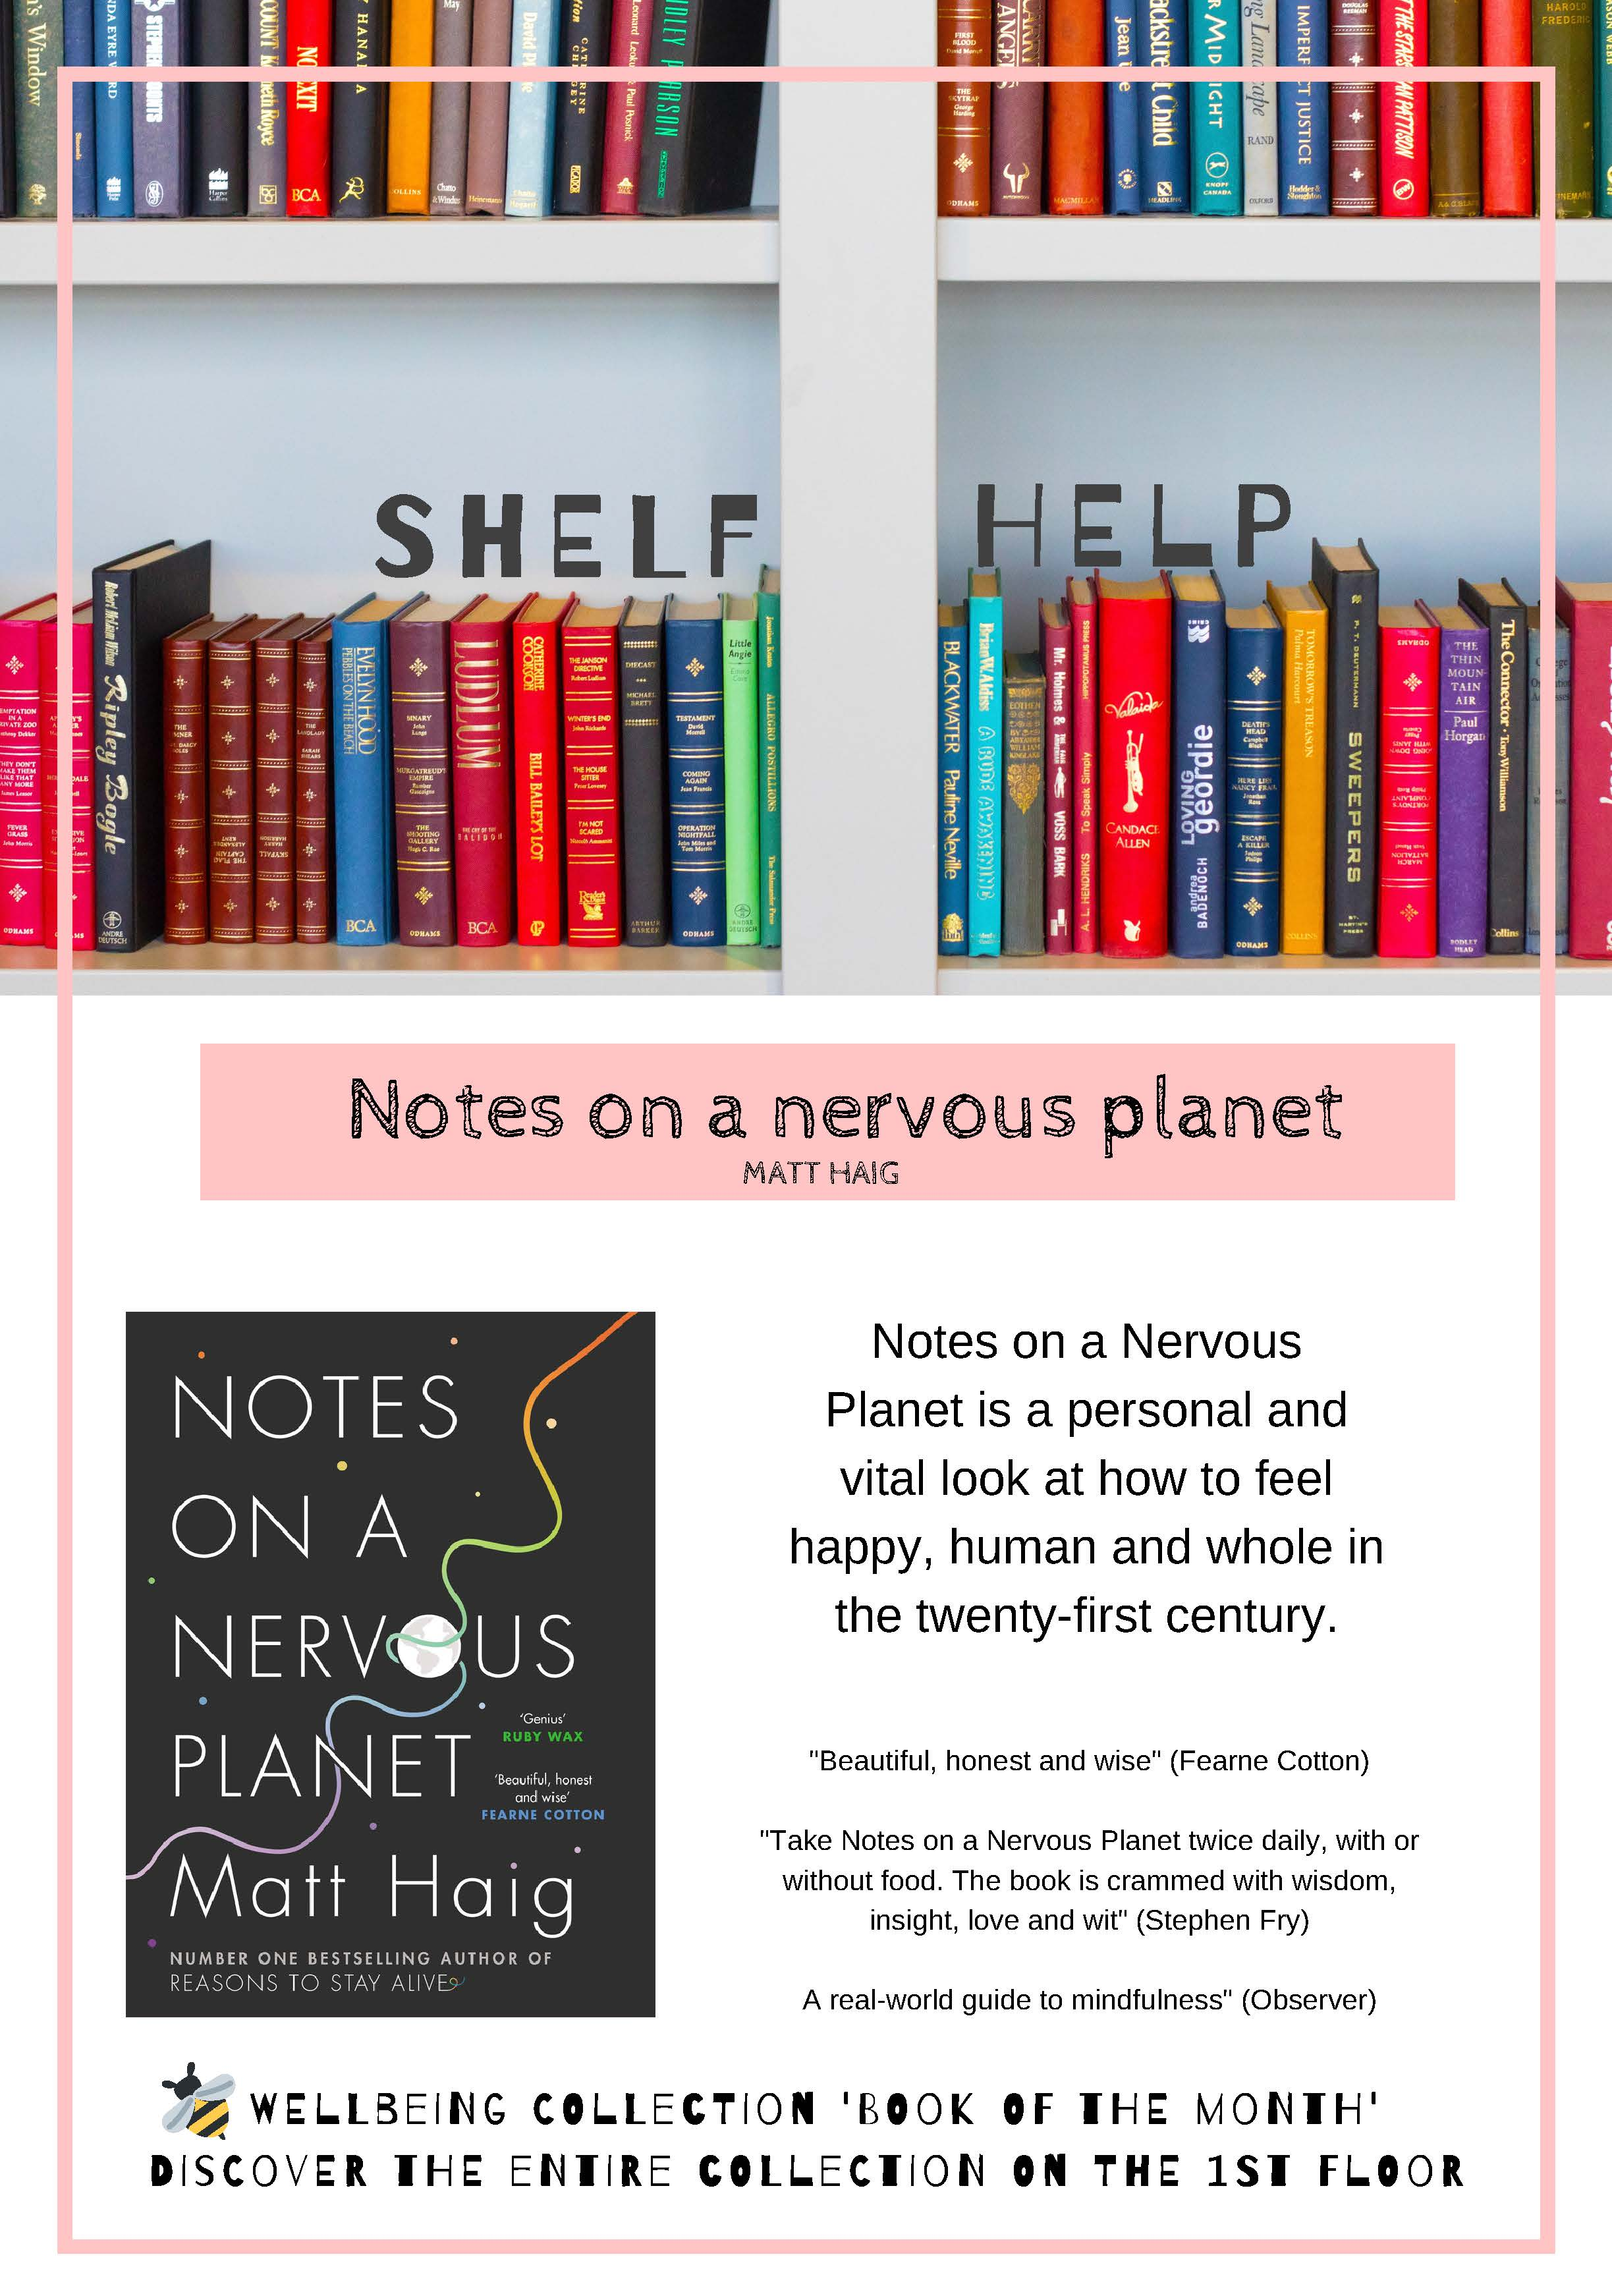 Review and photo of book  Notes on a Nervous planet by Matt Haig